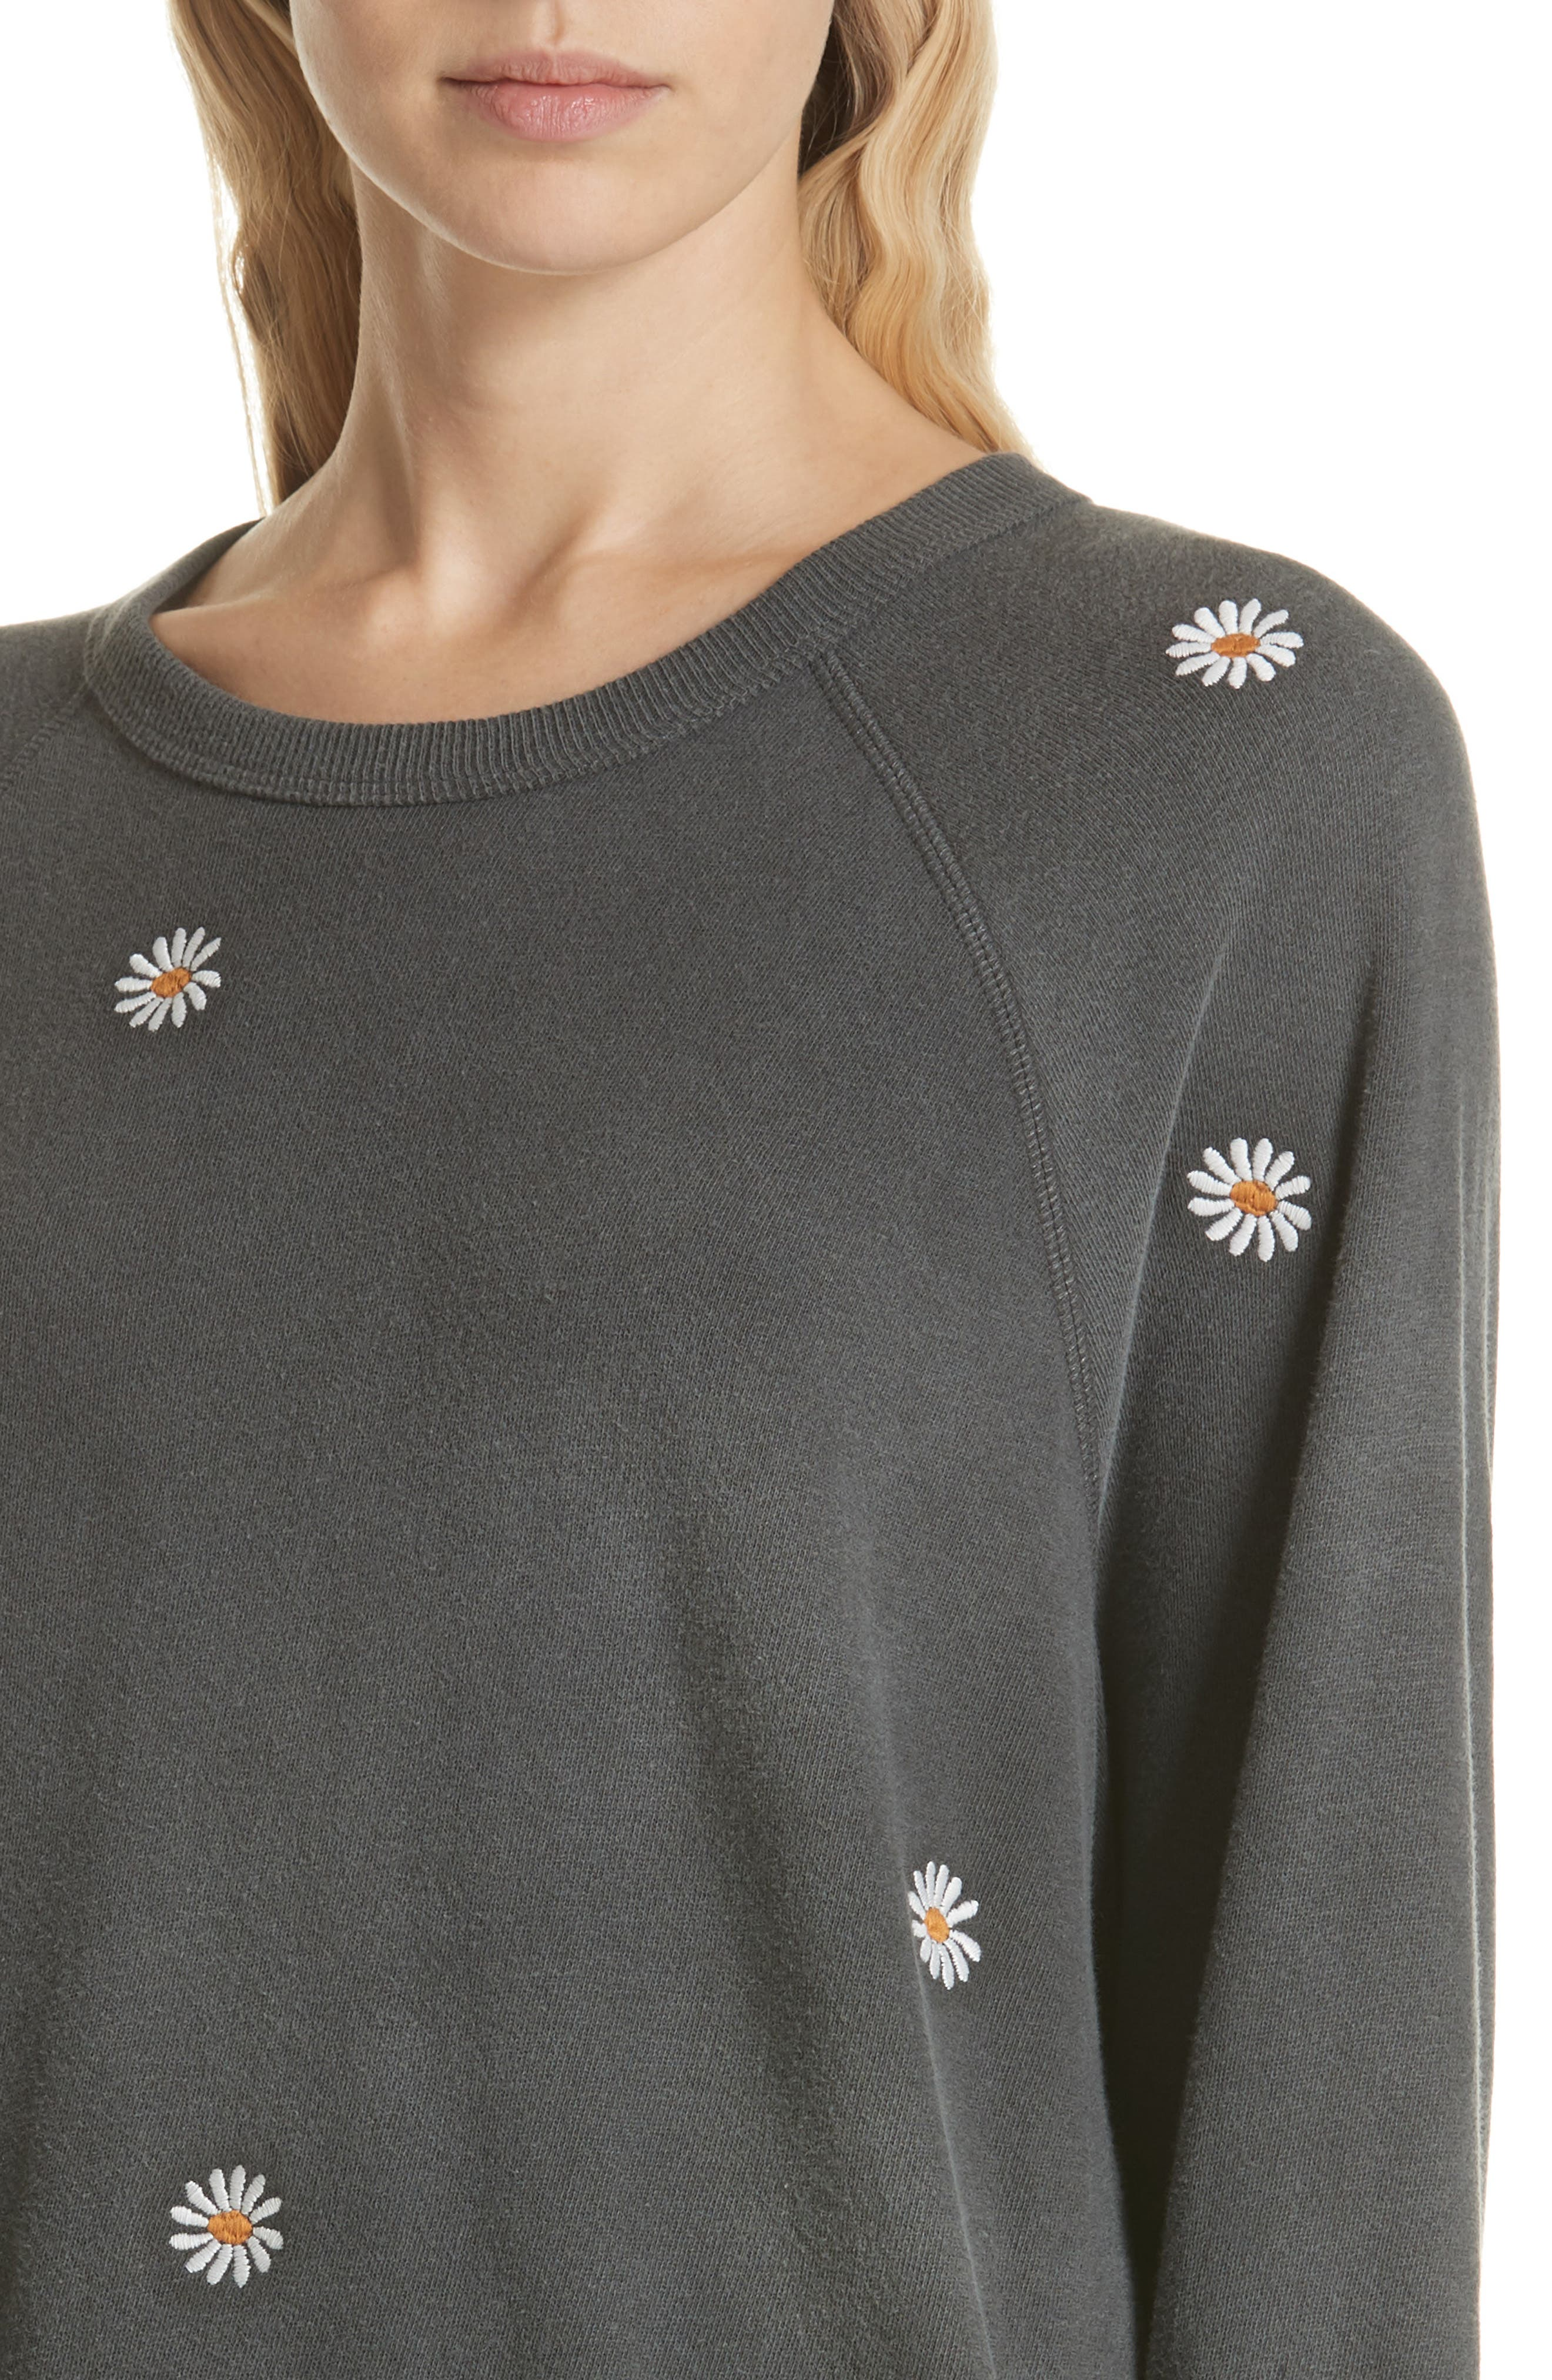 The Daisy Embroidered College Sweatshirt,                             Alternate thumbnail 4, color,                             001